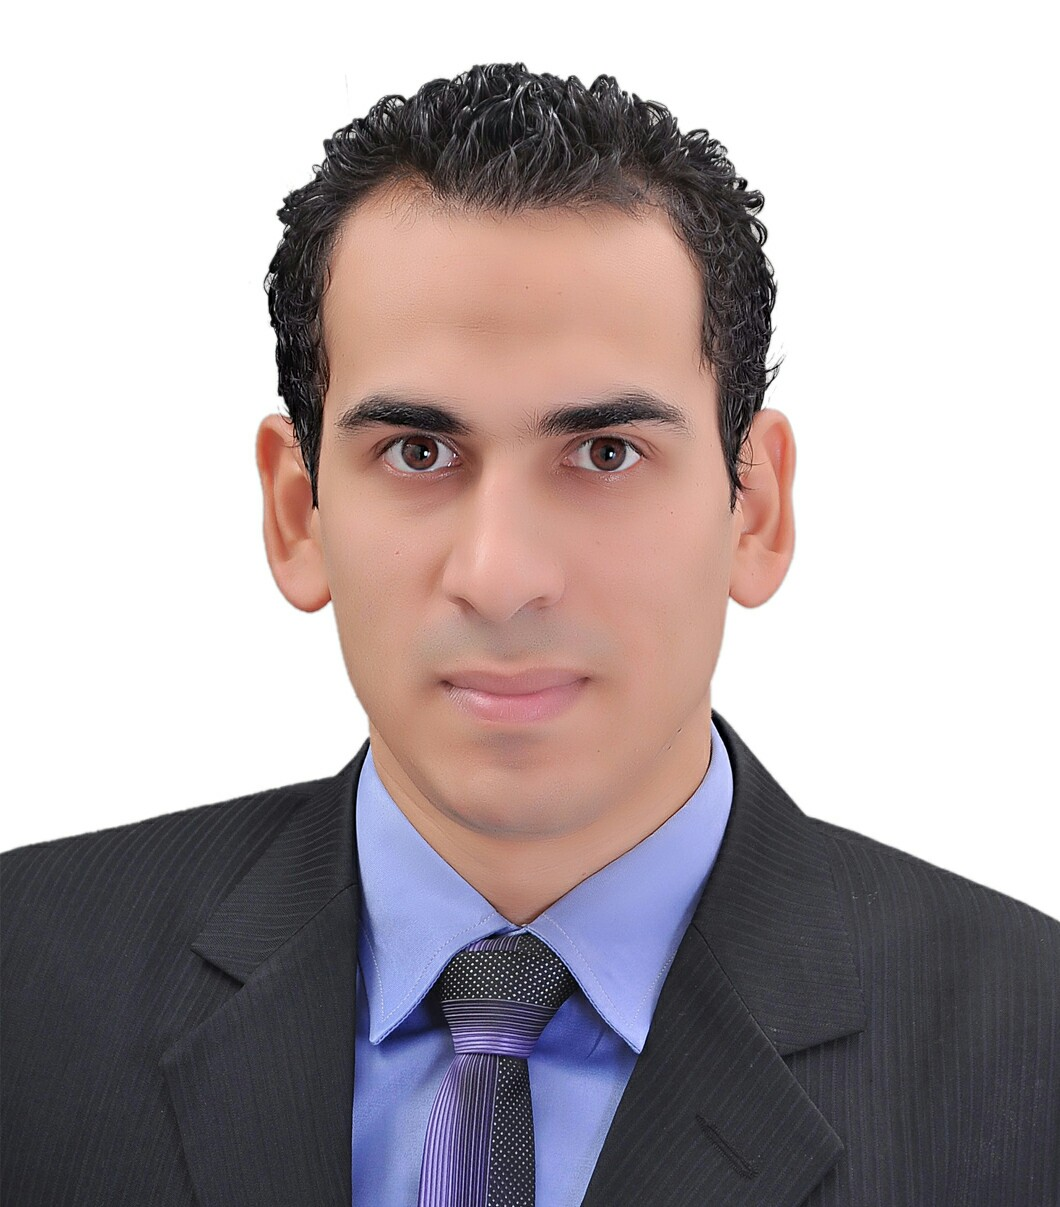 Ahmed Elsanhoury Profile Picture